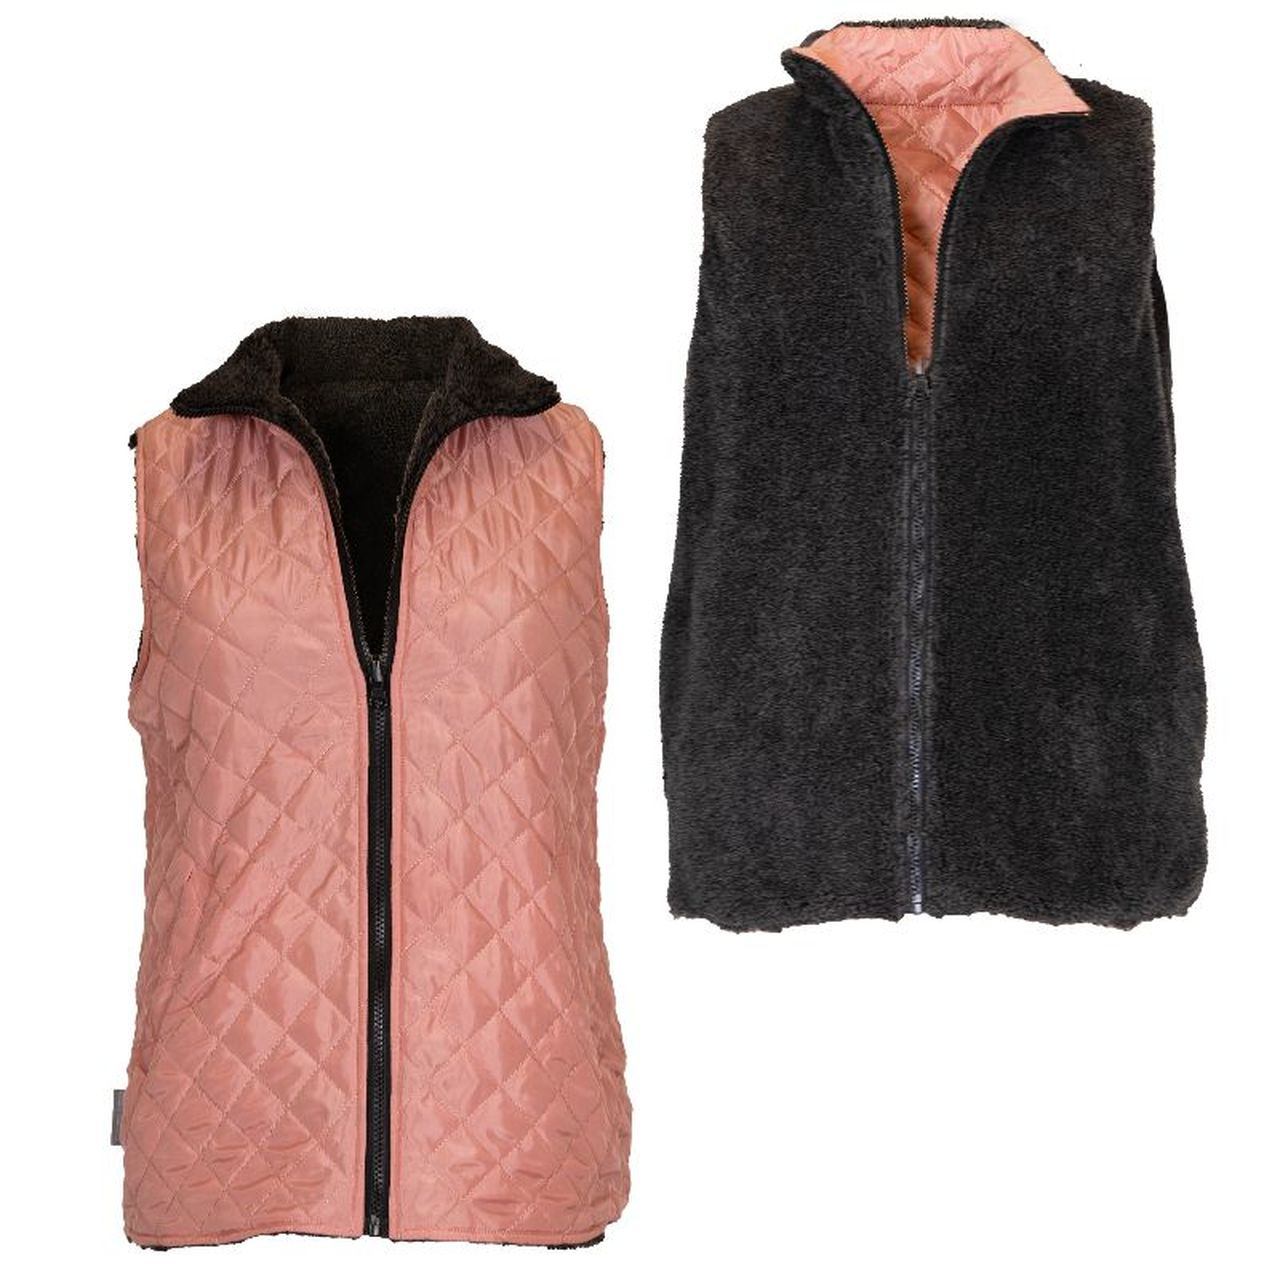 PINK/GRAY REVERSIBLE VEST - Molly's! A Chic and Unique Boutique